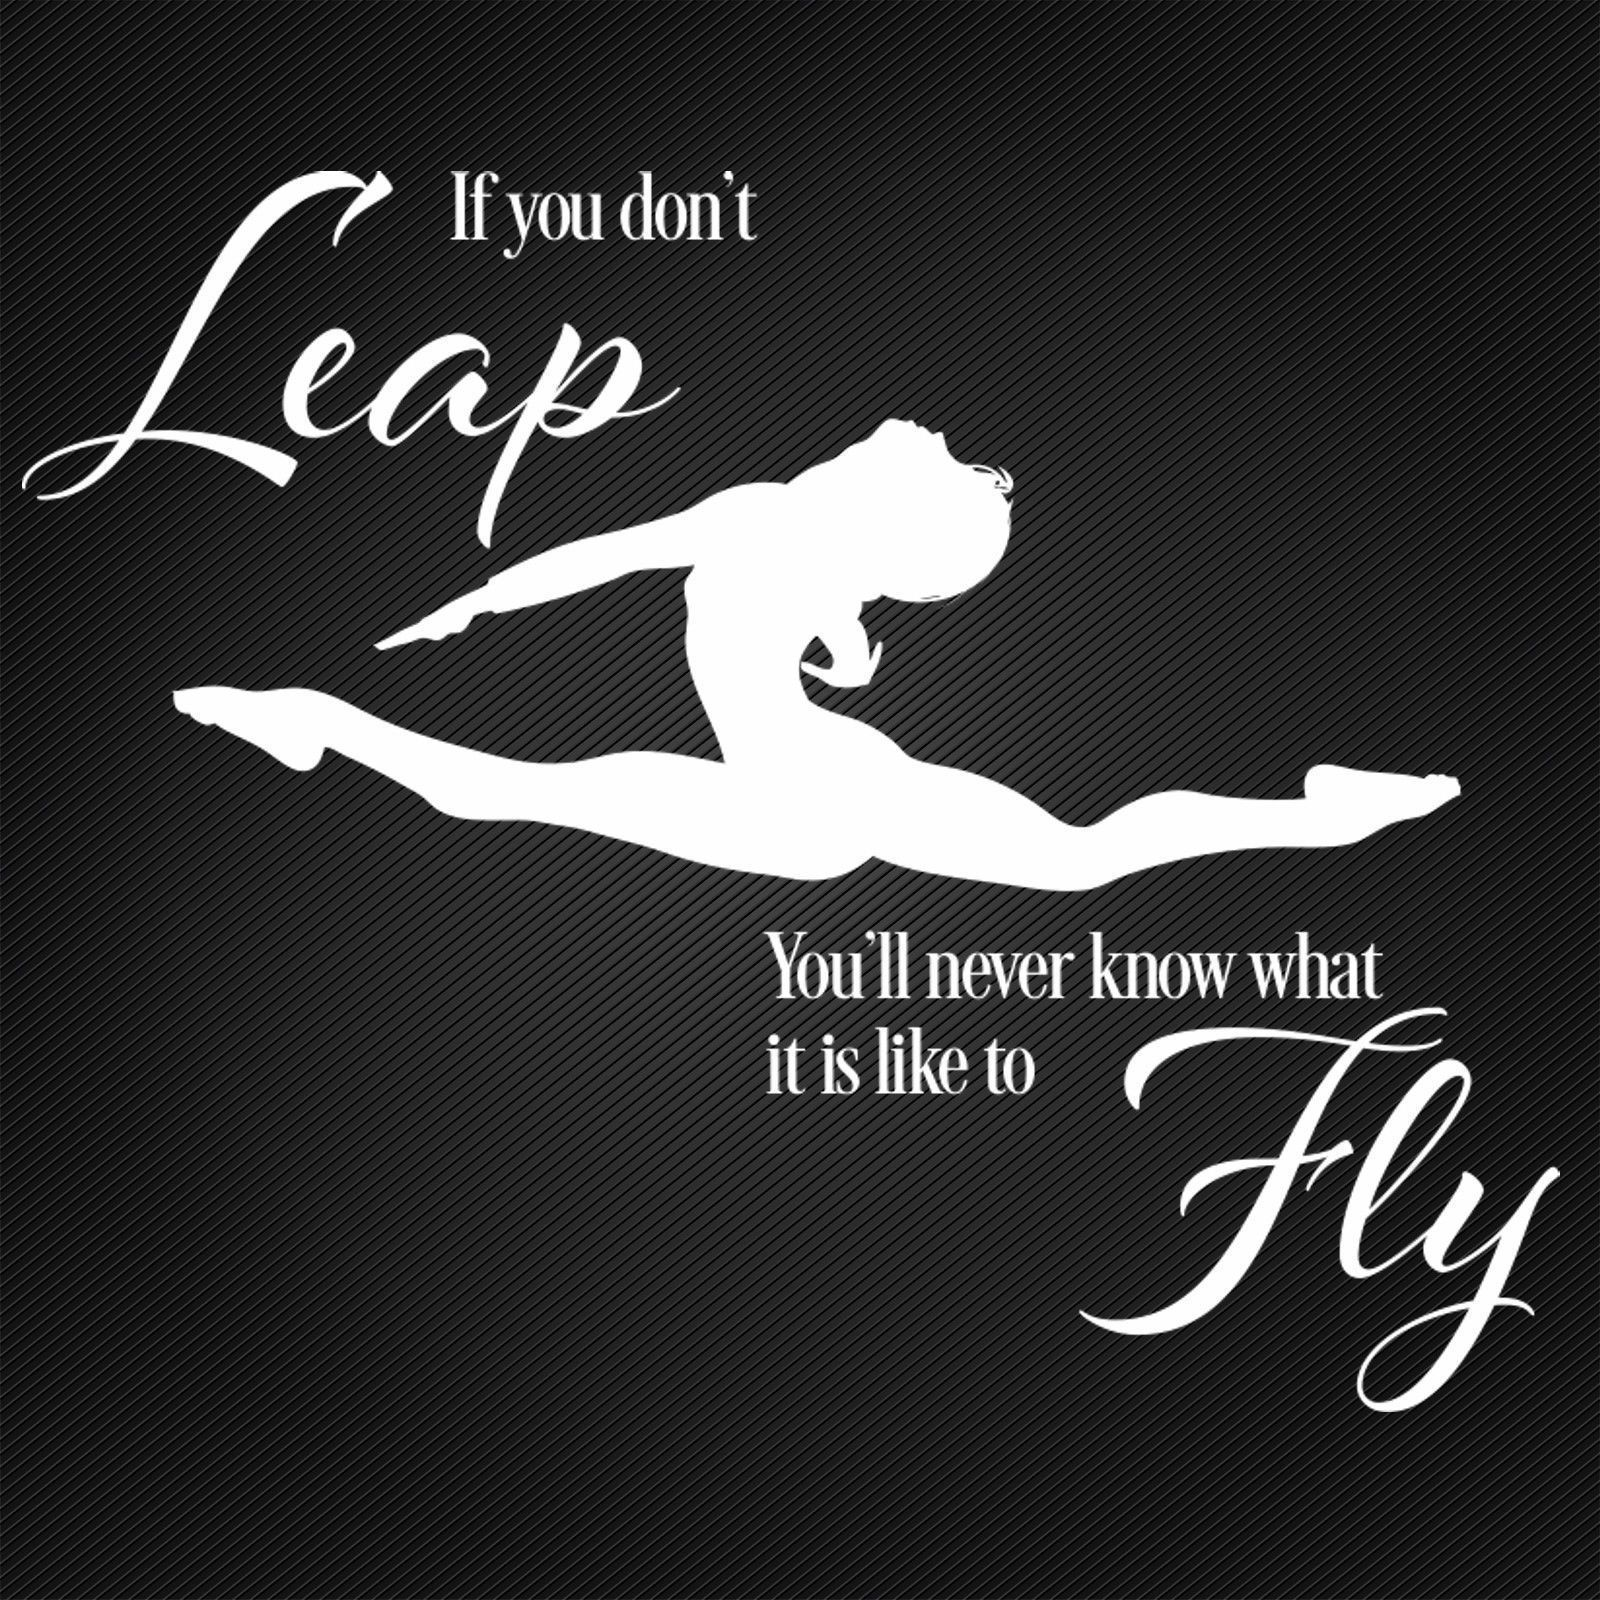 If you dont leap ballet gymnastic vinyl wall sticker saying if you dont leap ballet gymnastic vinyl wall sticker saying inspire words dance amipublicfo Image collections